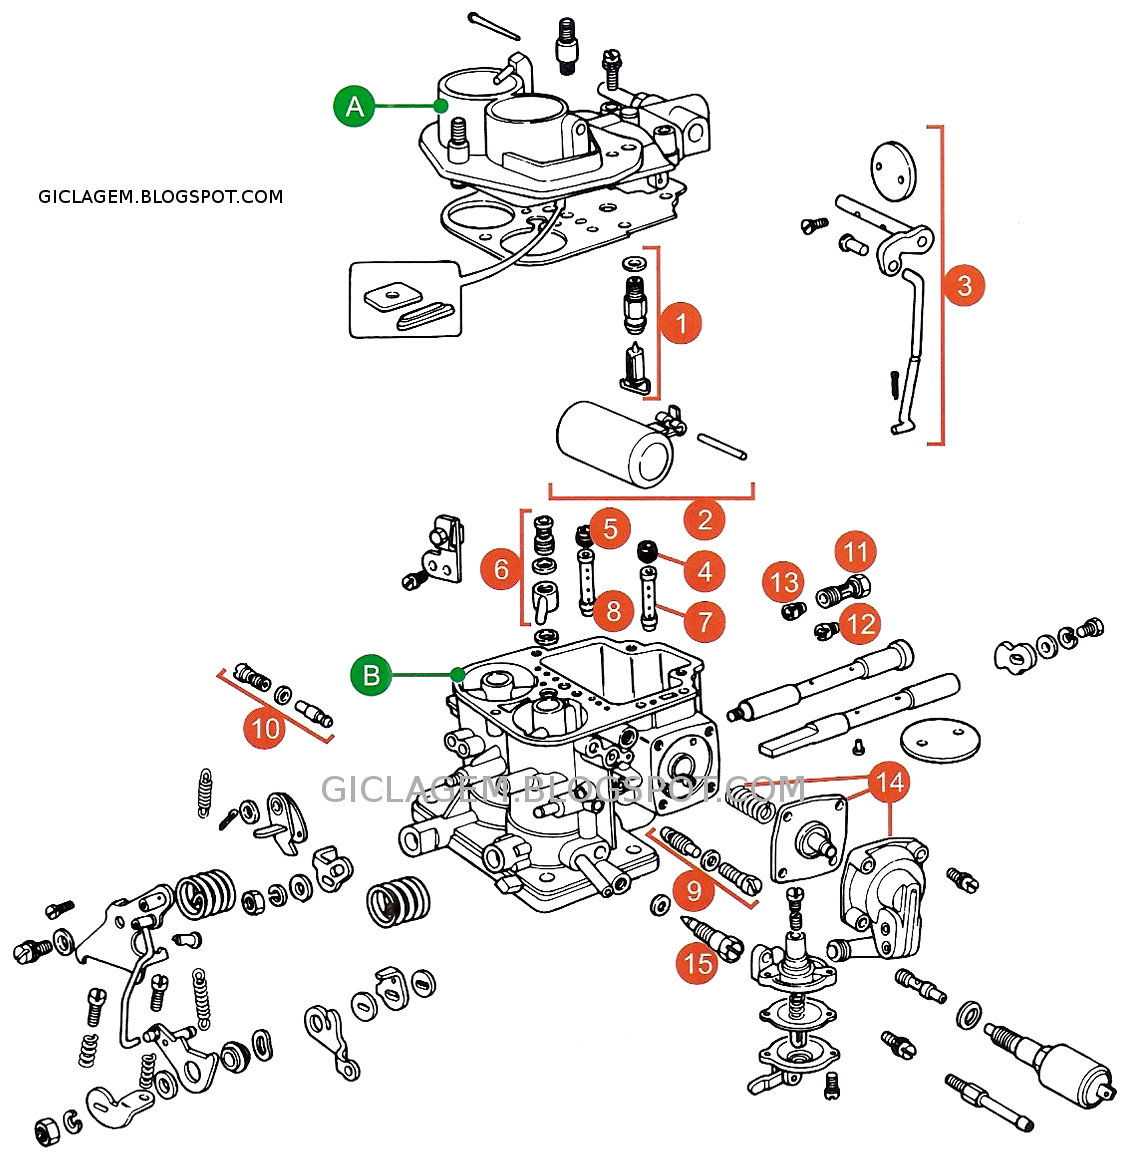 1973 karmann ghia engine wiring